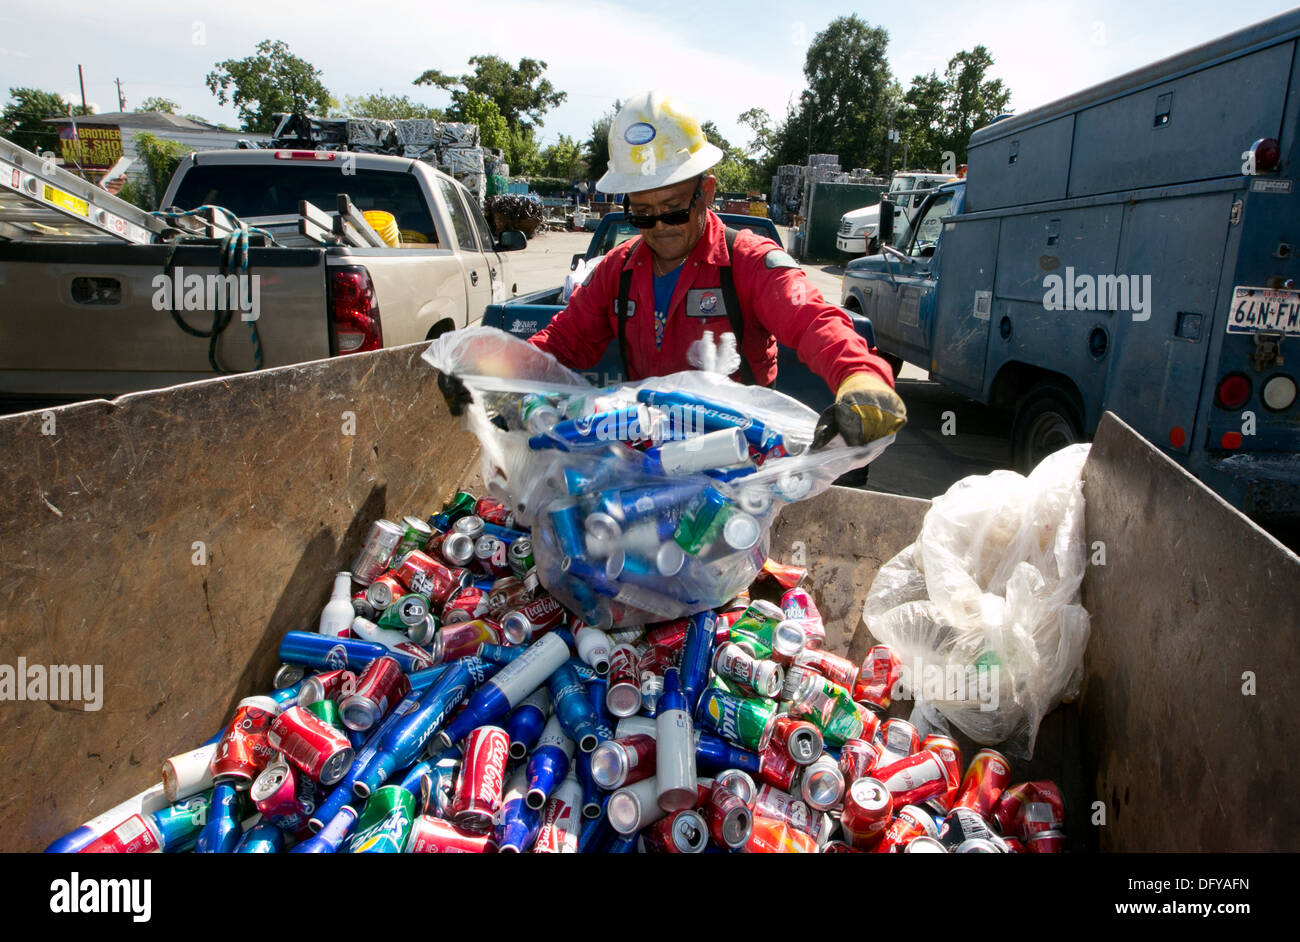 Worker at scrap metal recycling plant empties bag of cans, beer cans, soda cans in Texas - Stock Image